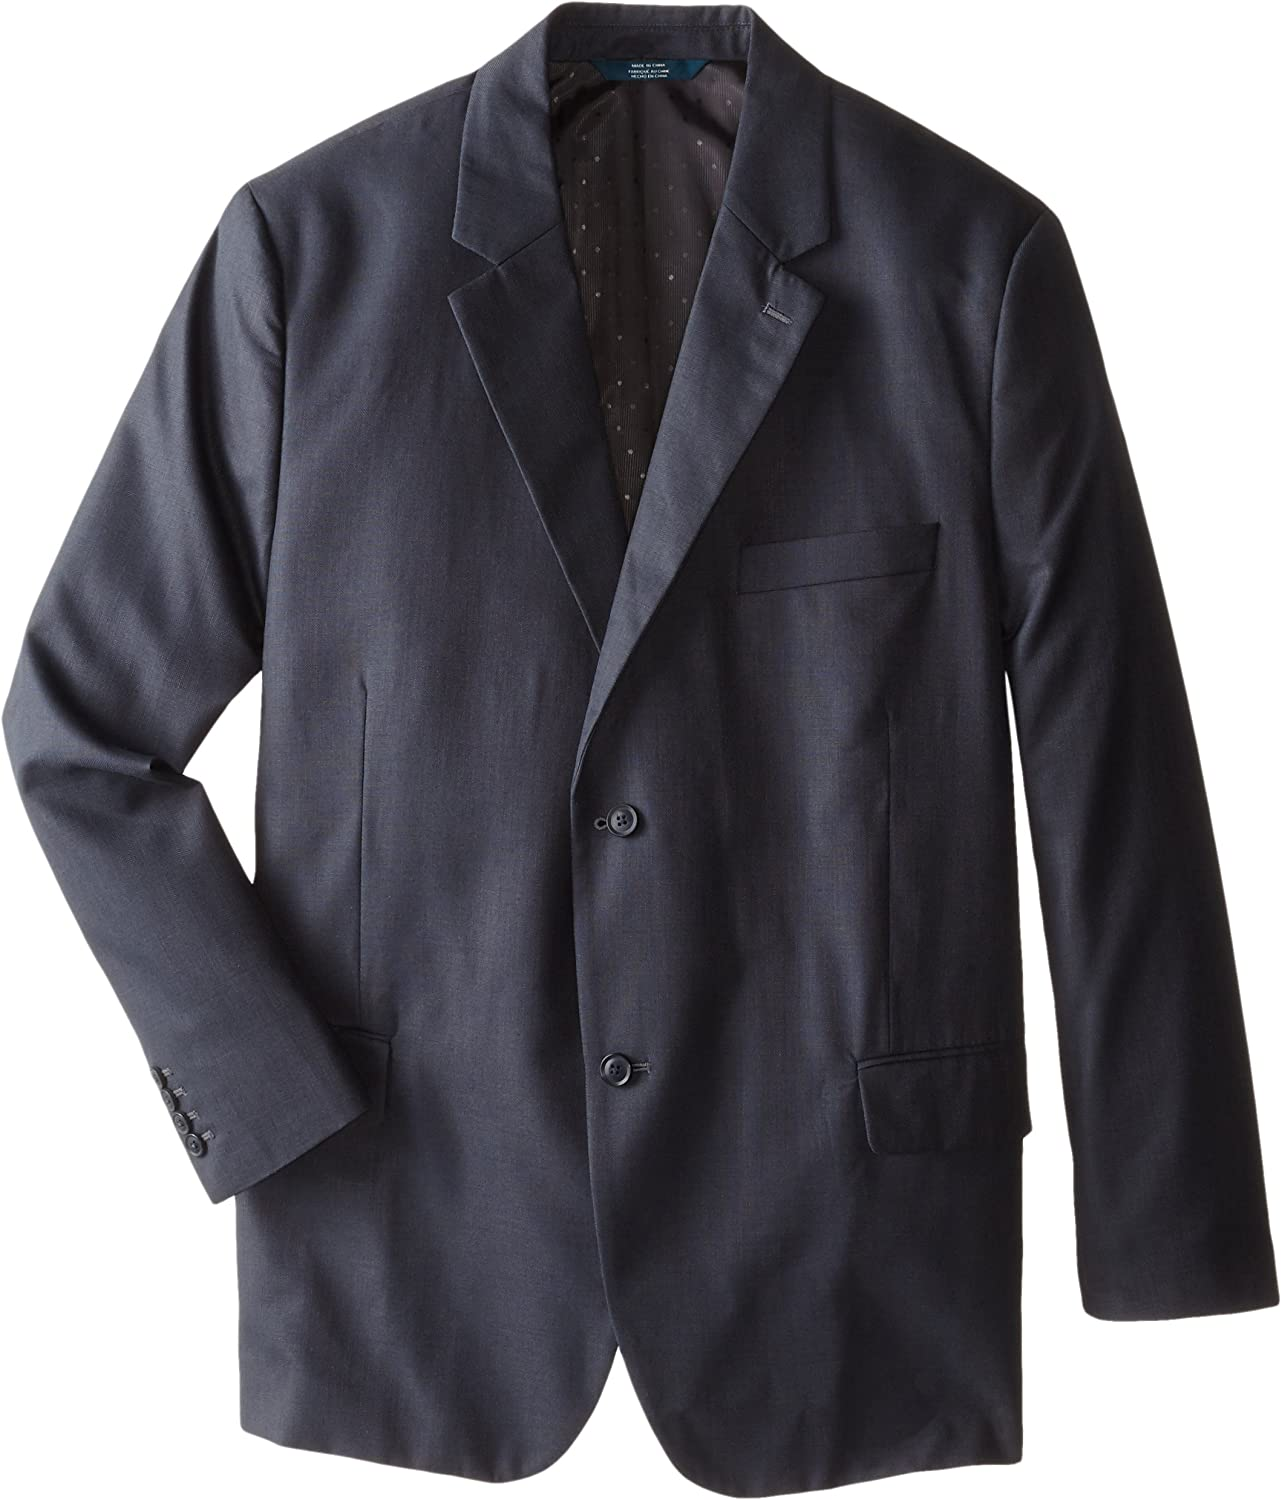 Perry Ellis Men's Big and Tall Textured Fabric Suit Jacket